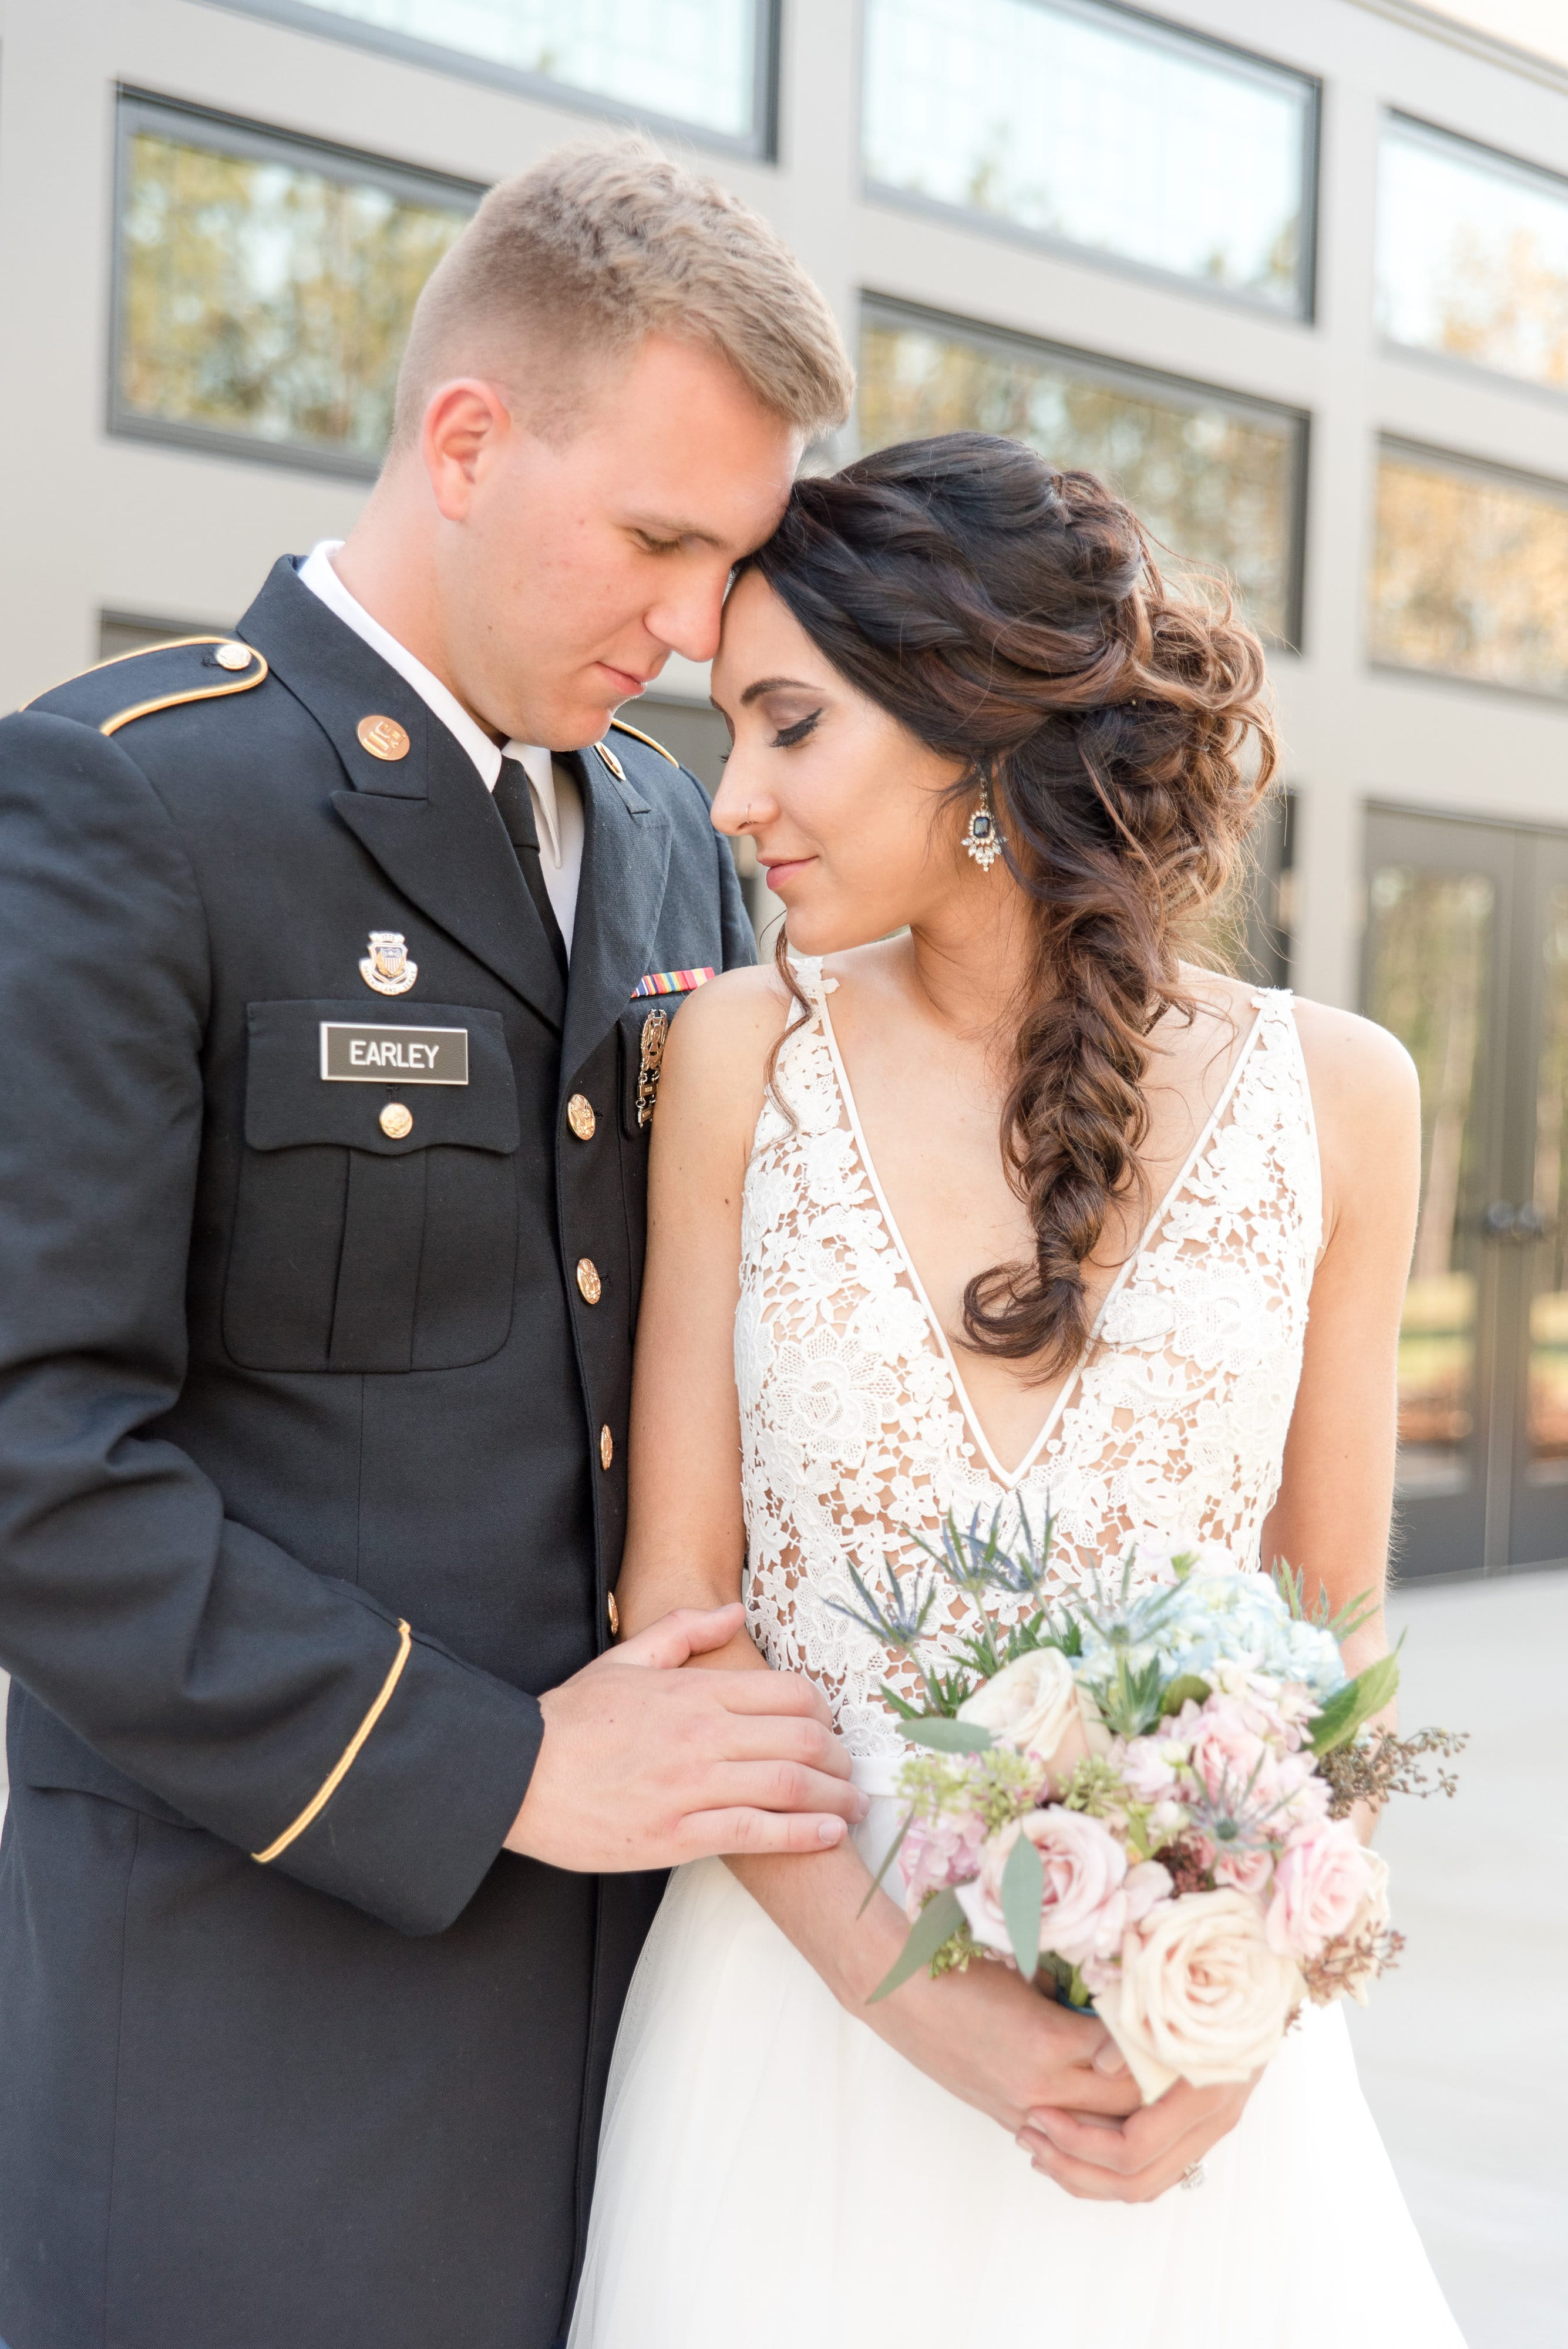 Groom embraces bride who holds a stunning bridal bouquet designed by Magnificent Moments Weddings